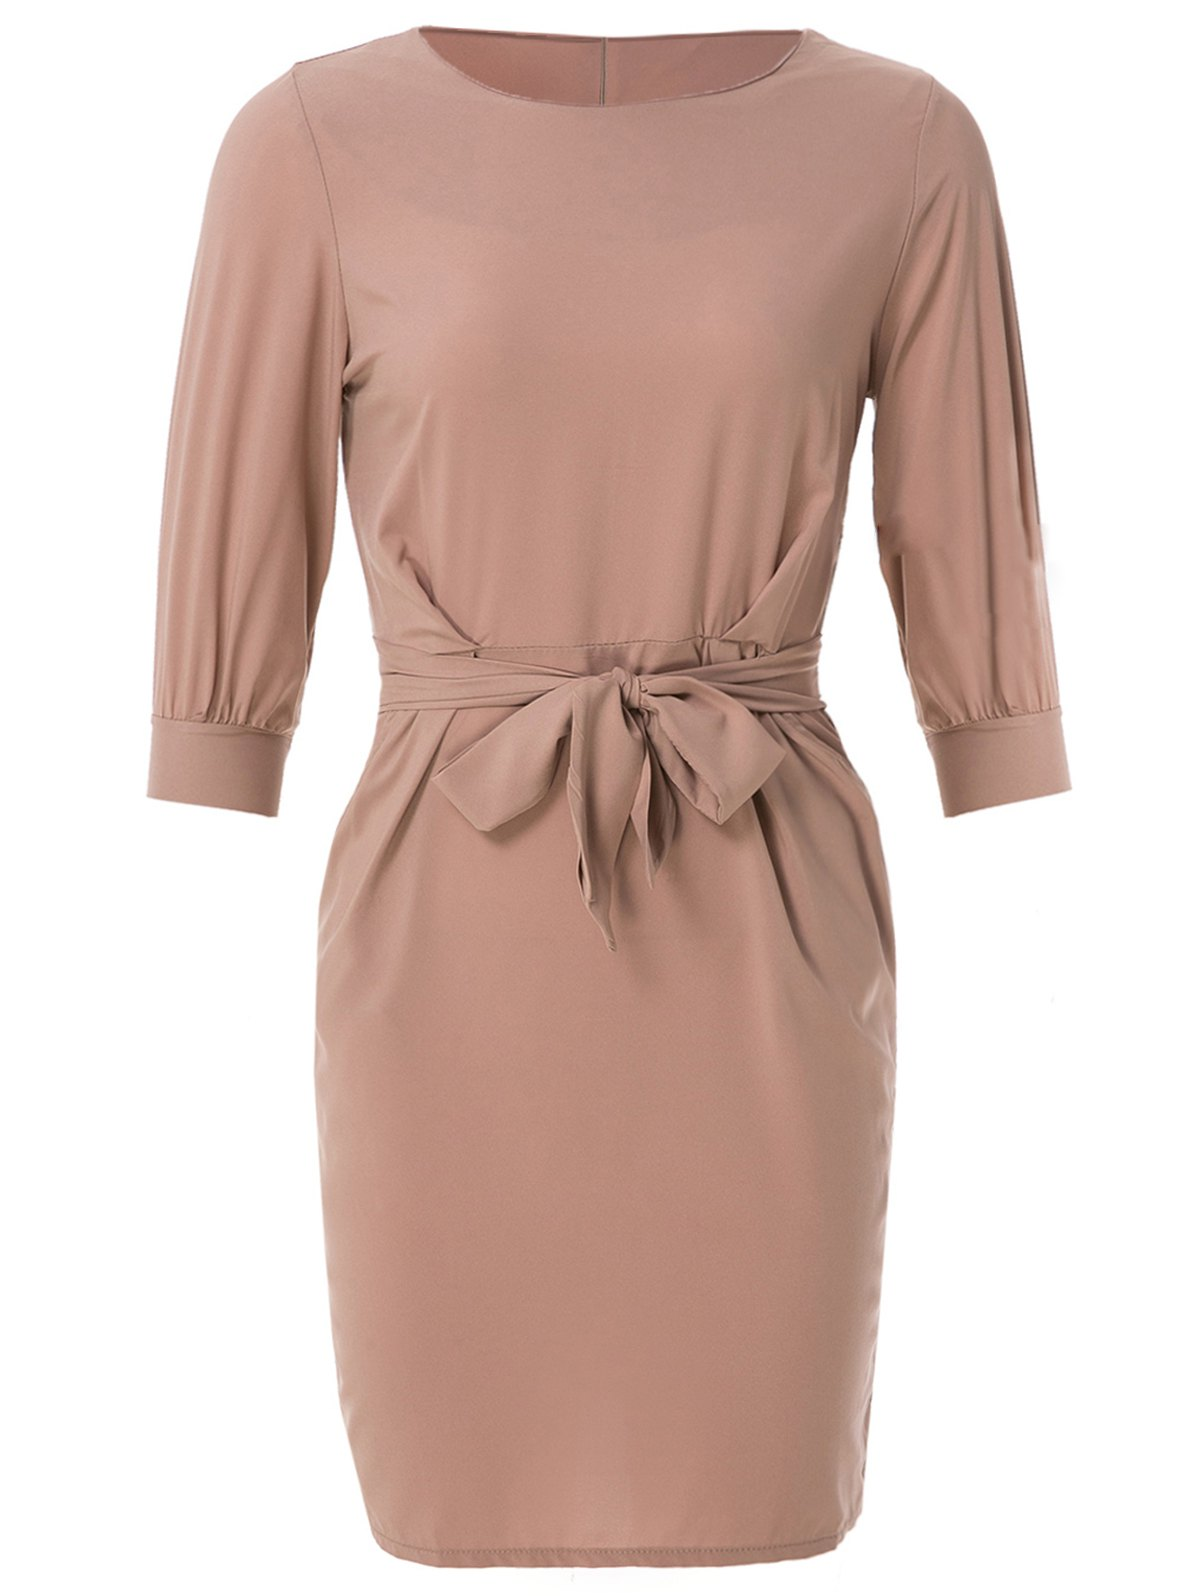 Sheath Boat Neck Dress With Belt - NUDE PINK M